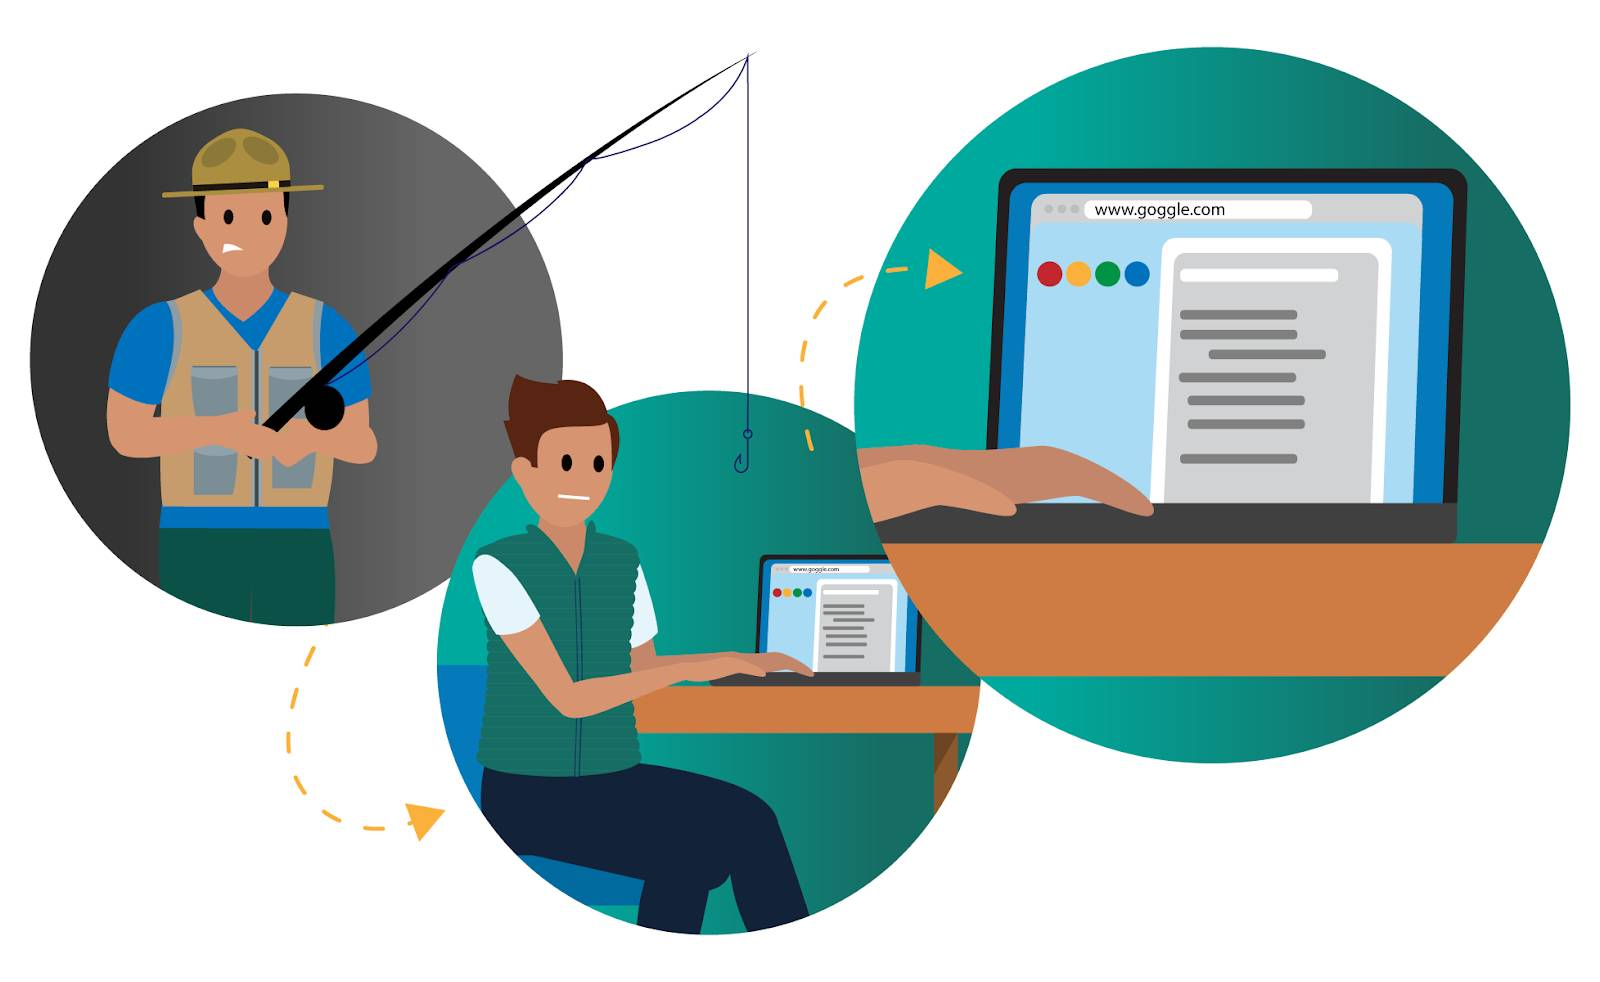 Three images: fisherman with a rod and hook, who lures someone with an open laptop, and diverts him to a false website